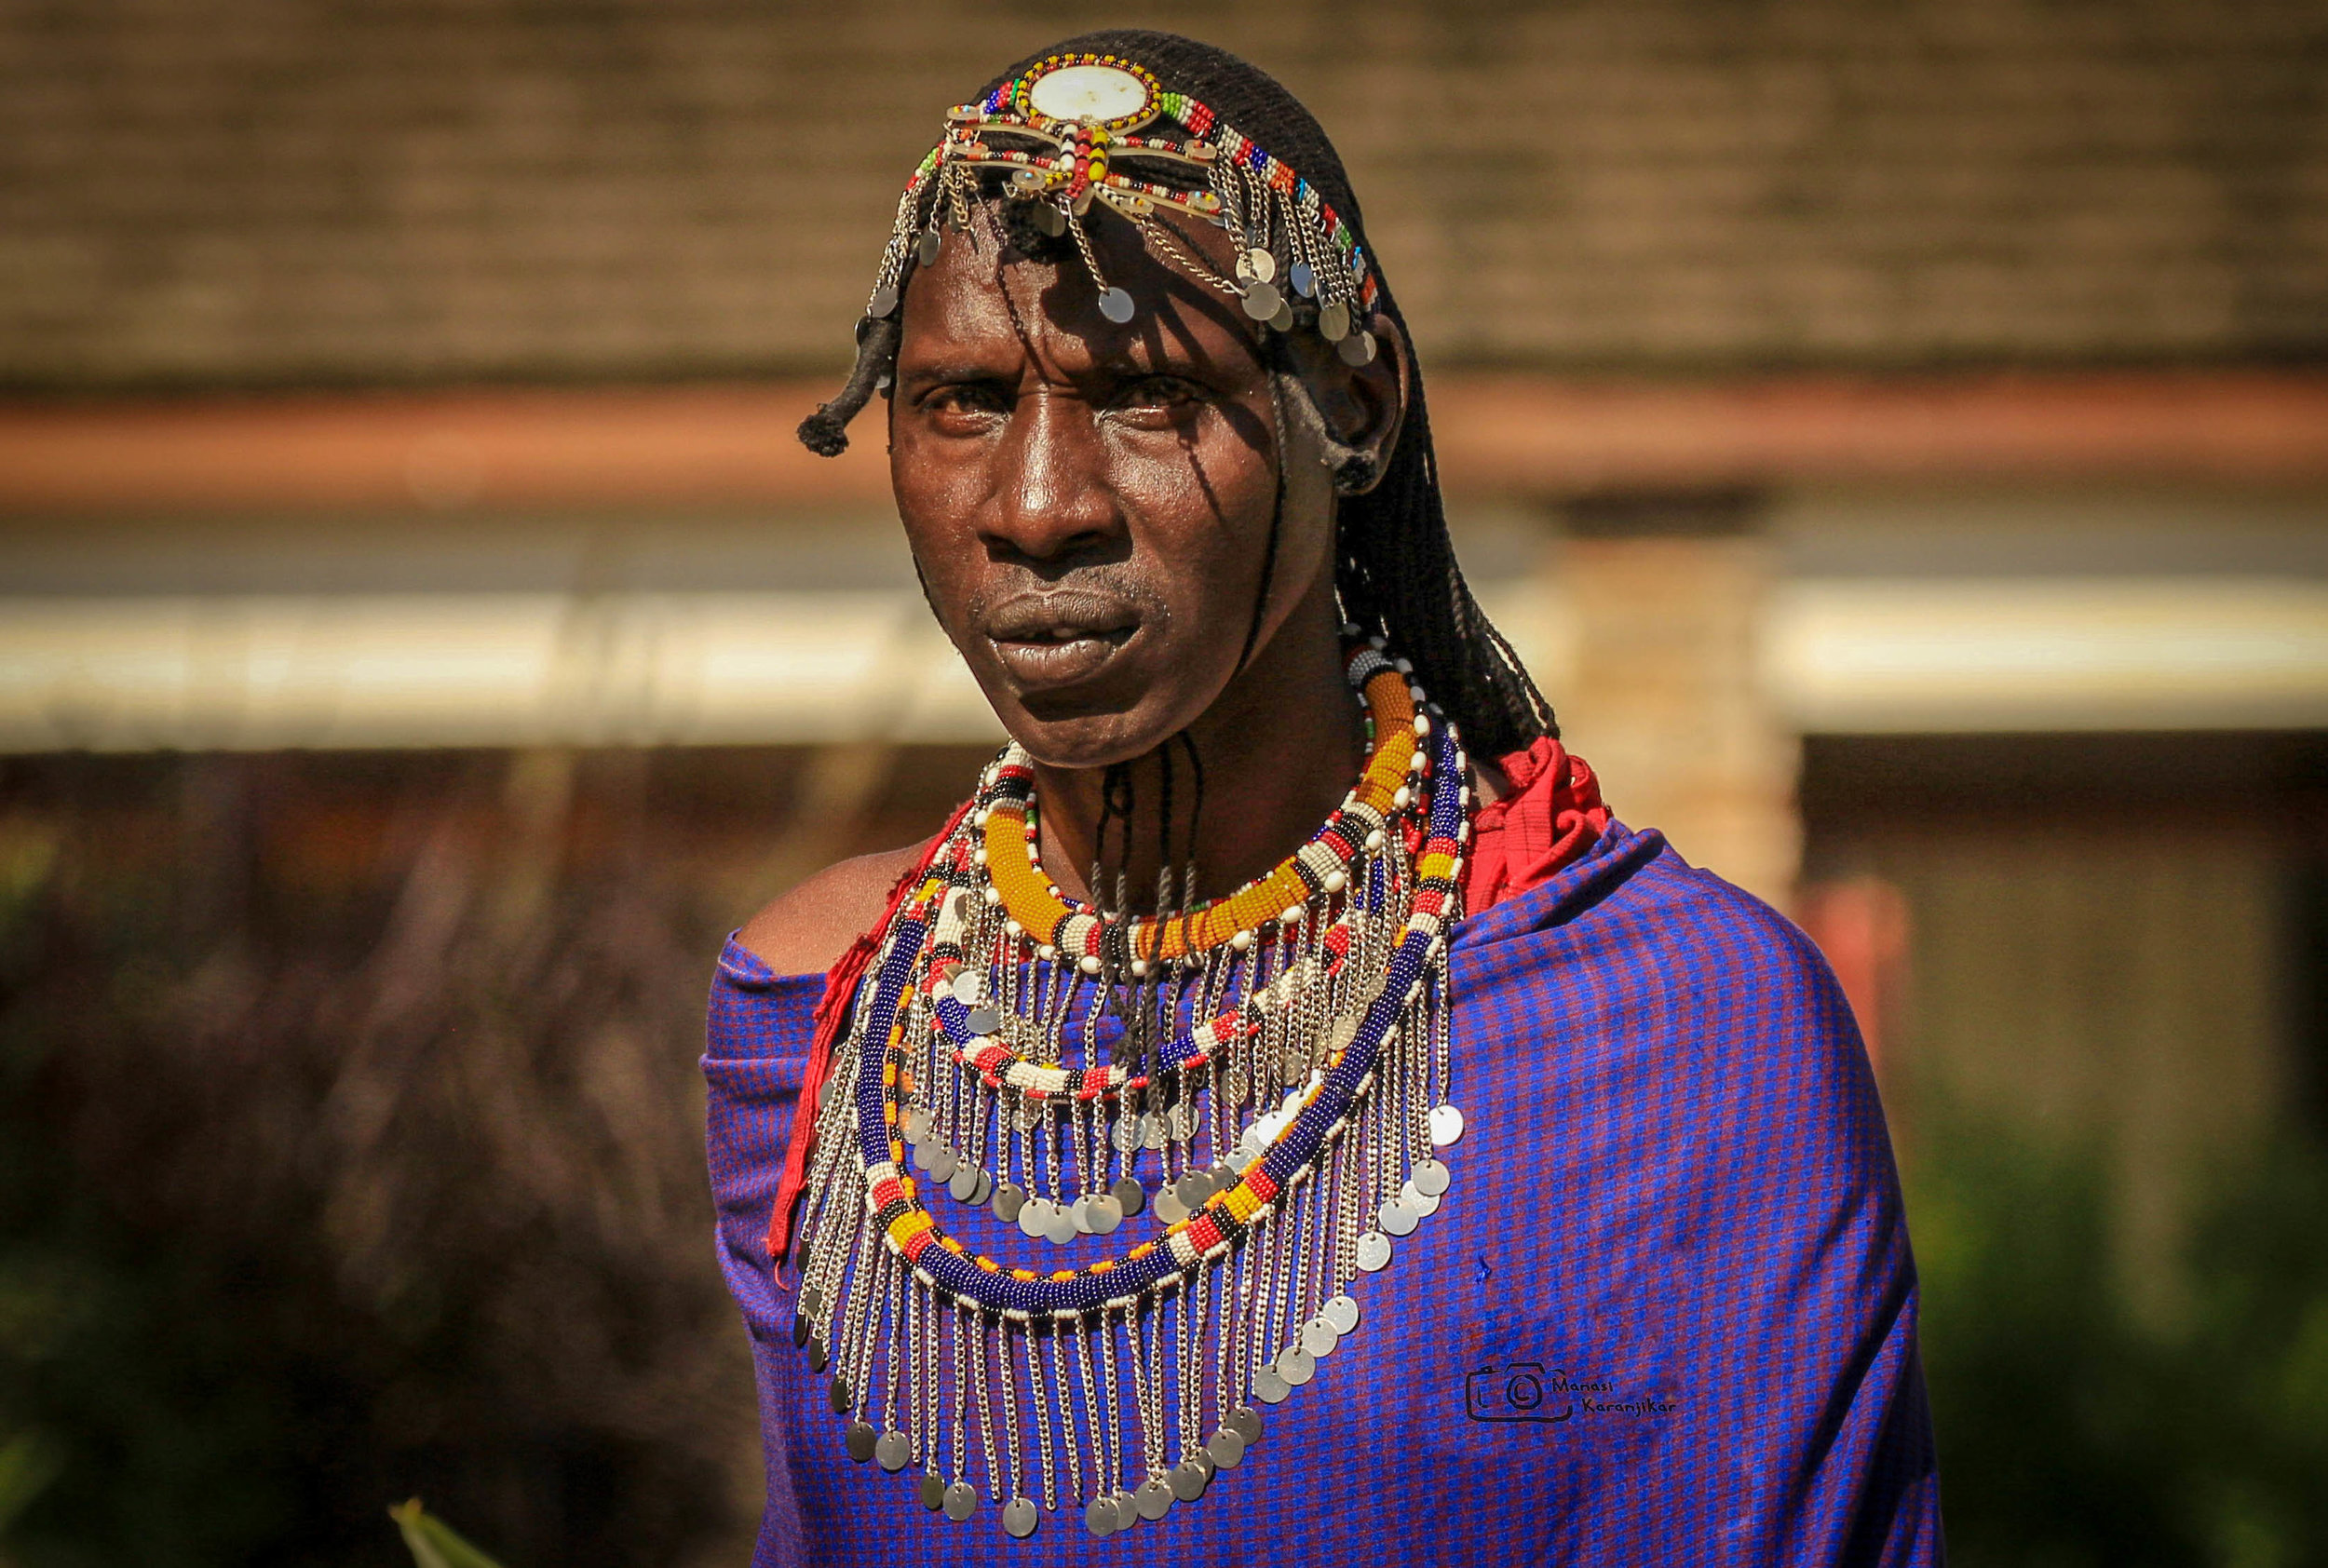 Masai man wearing a traditional FRINGED collar